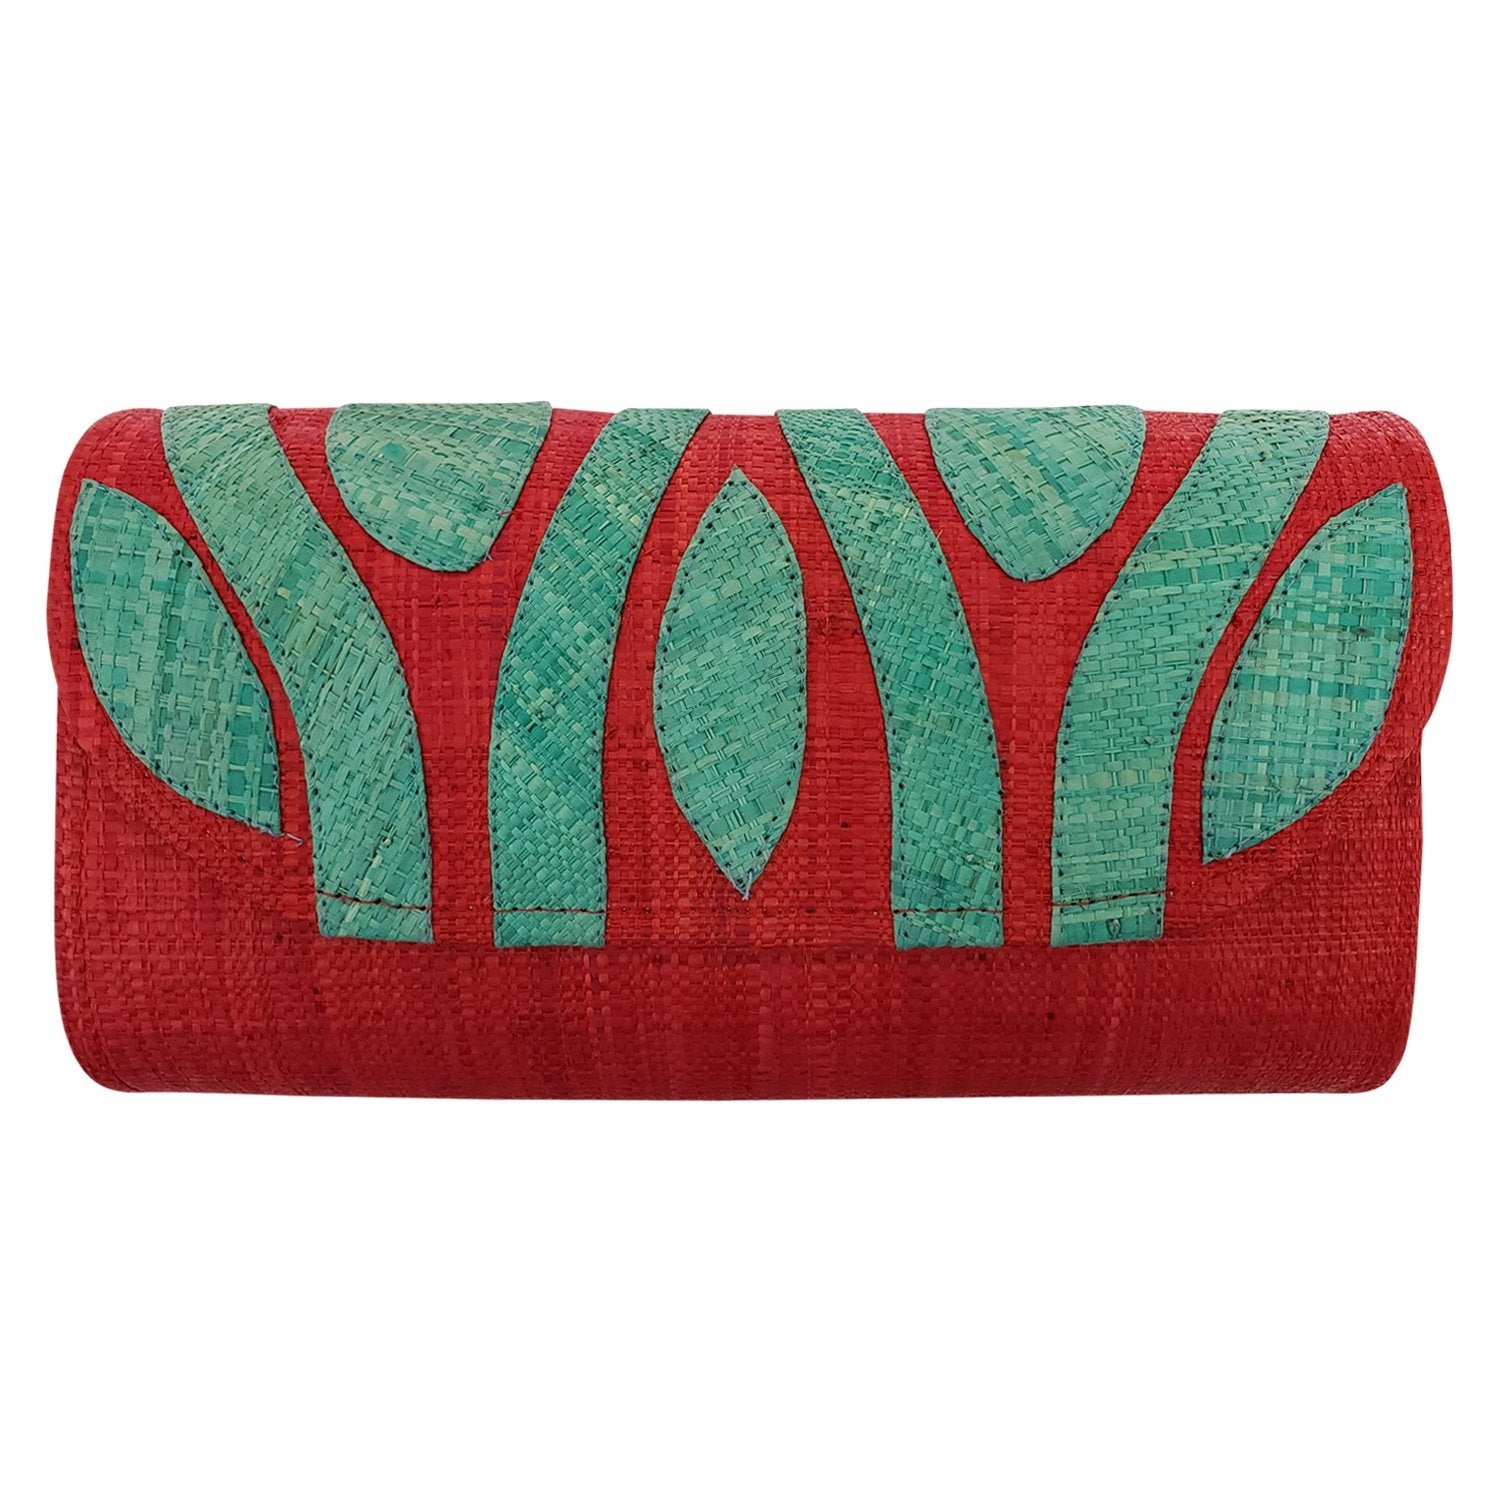 Authentic Handwoven Red Madagascar Raffia Clutch with Light Blue Accents